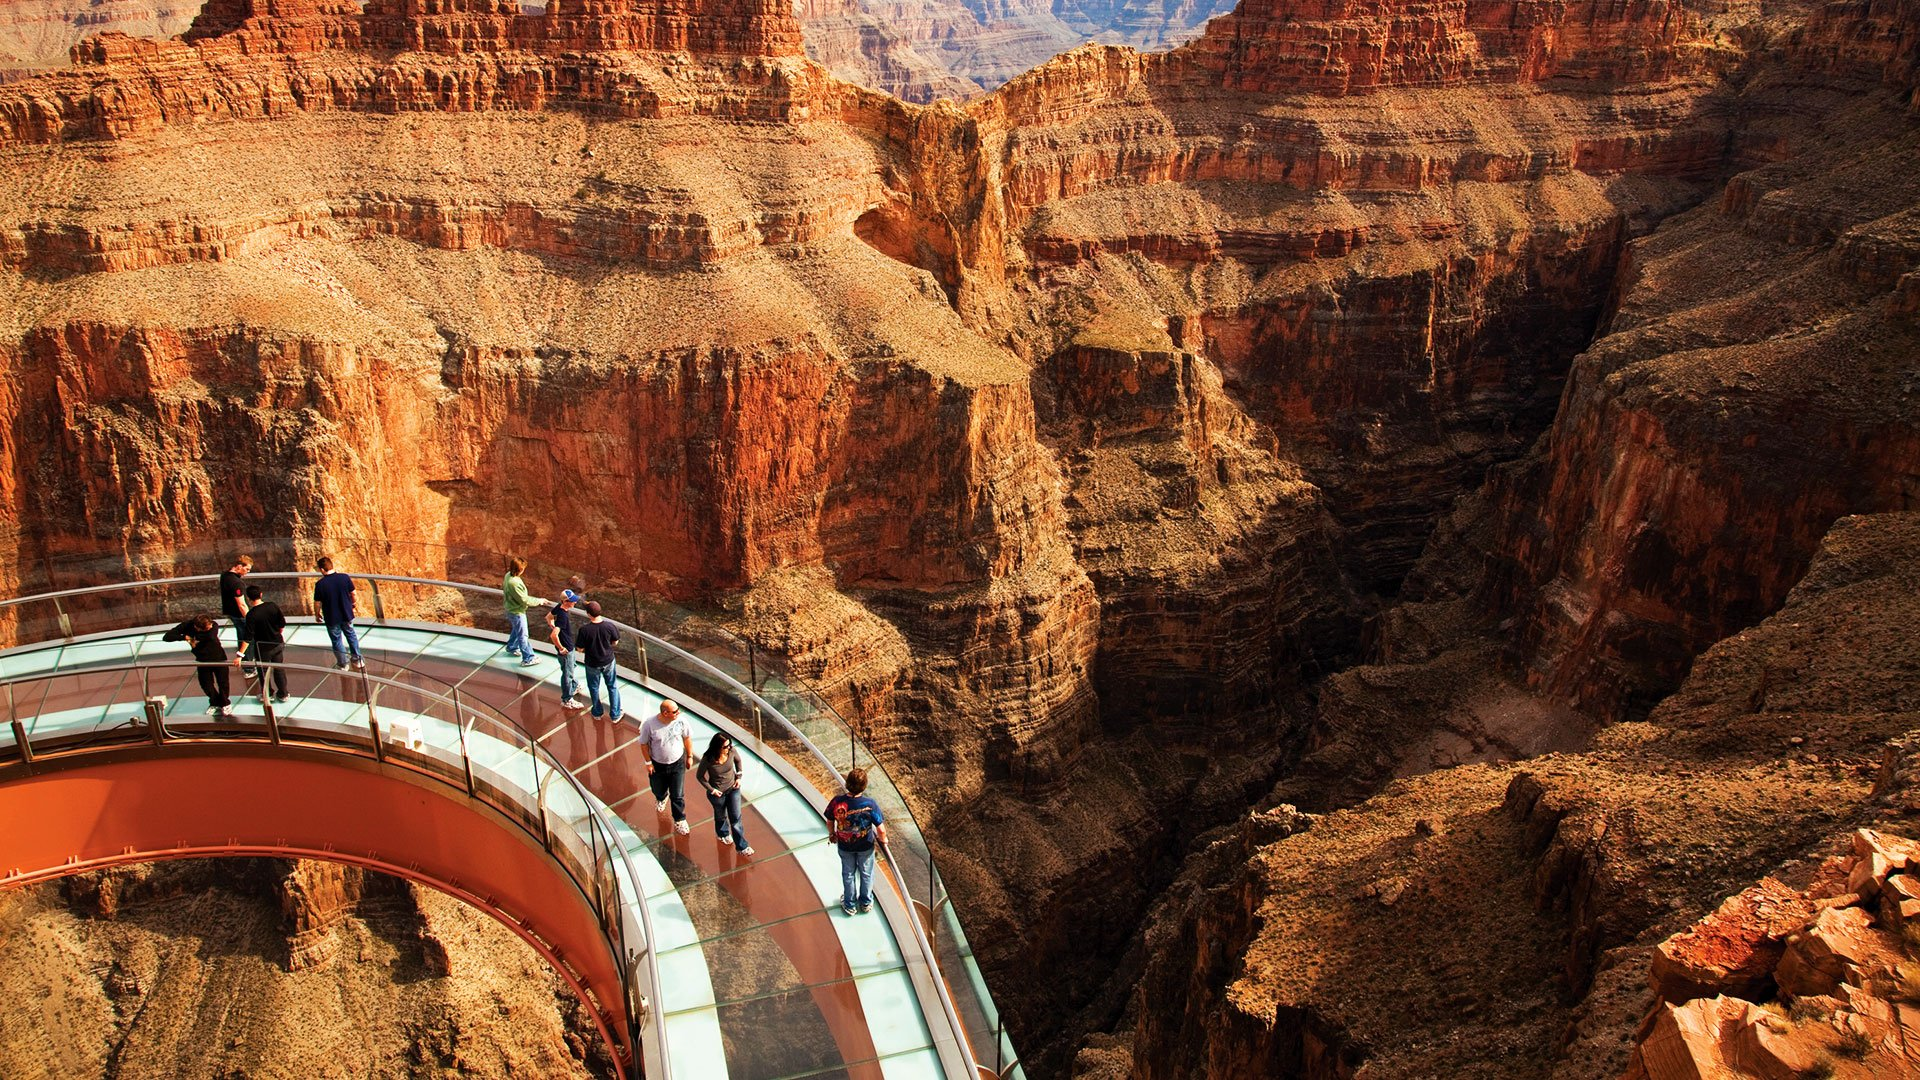 Guests walking on the Skywalk glass bridge with the Grand Canyon in the background.